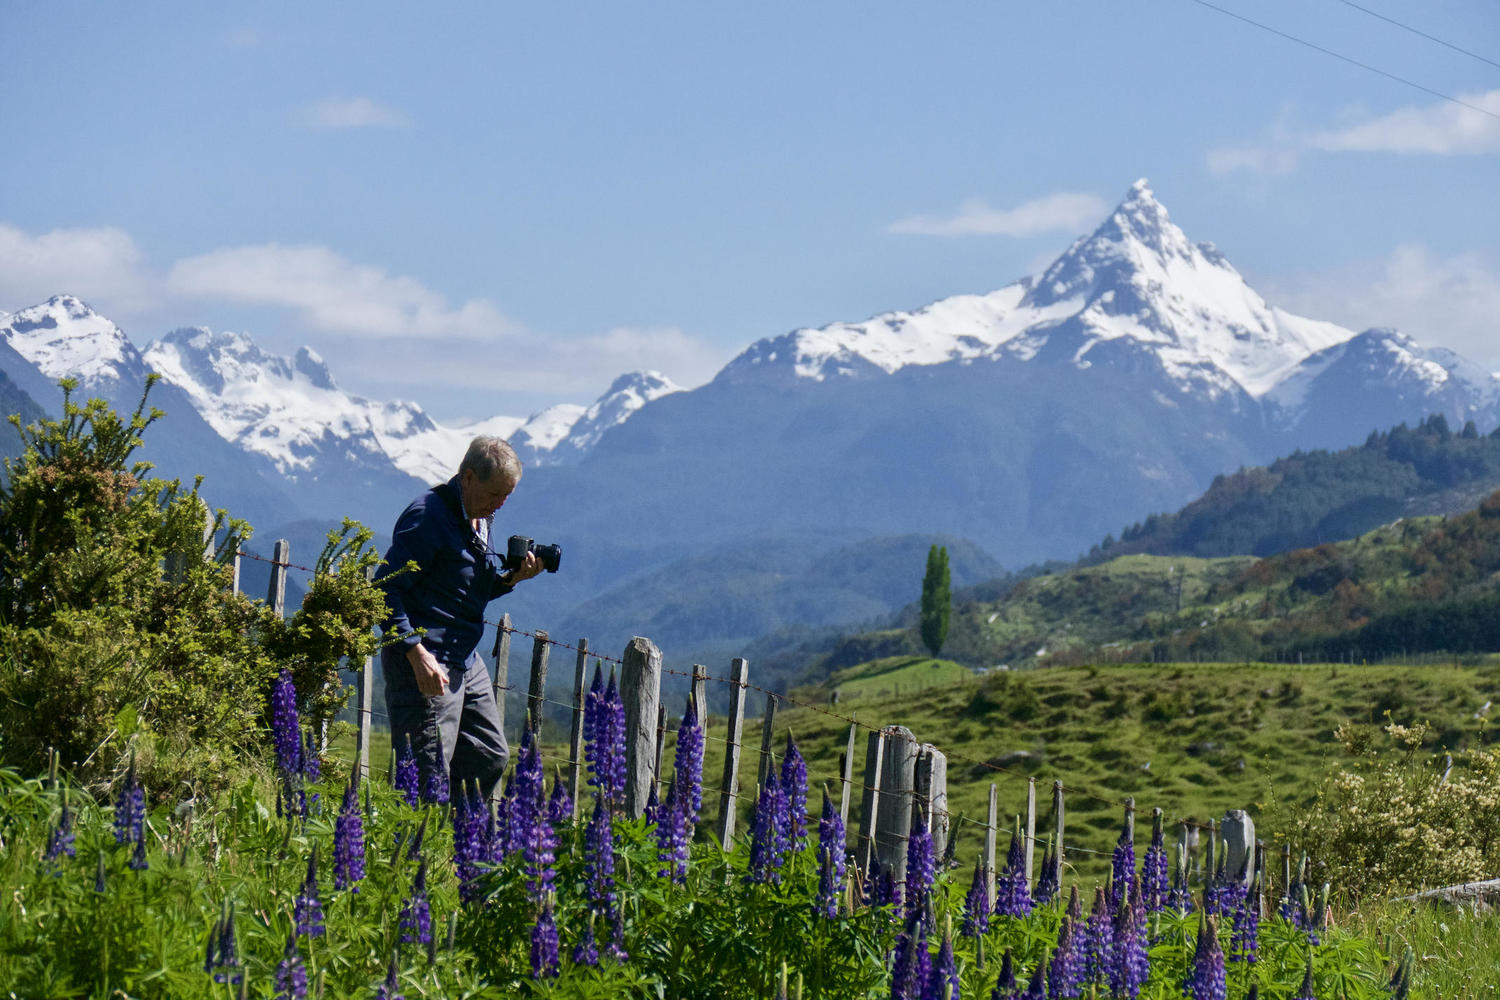 Taking photos of a volcano north of Coyhaique